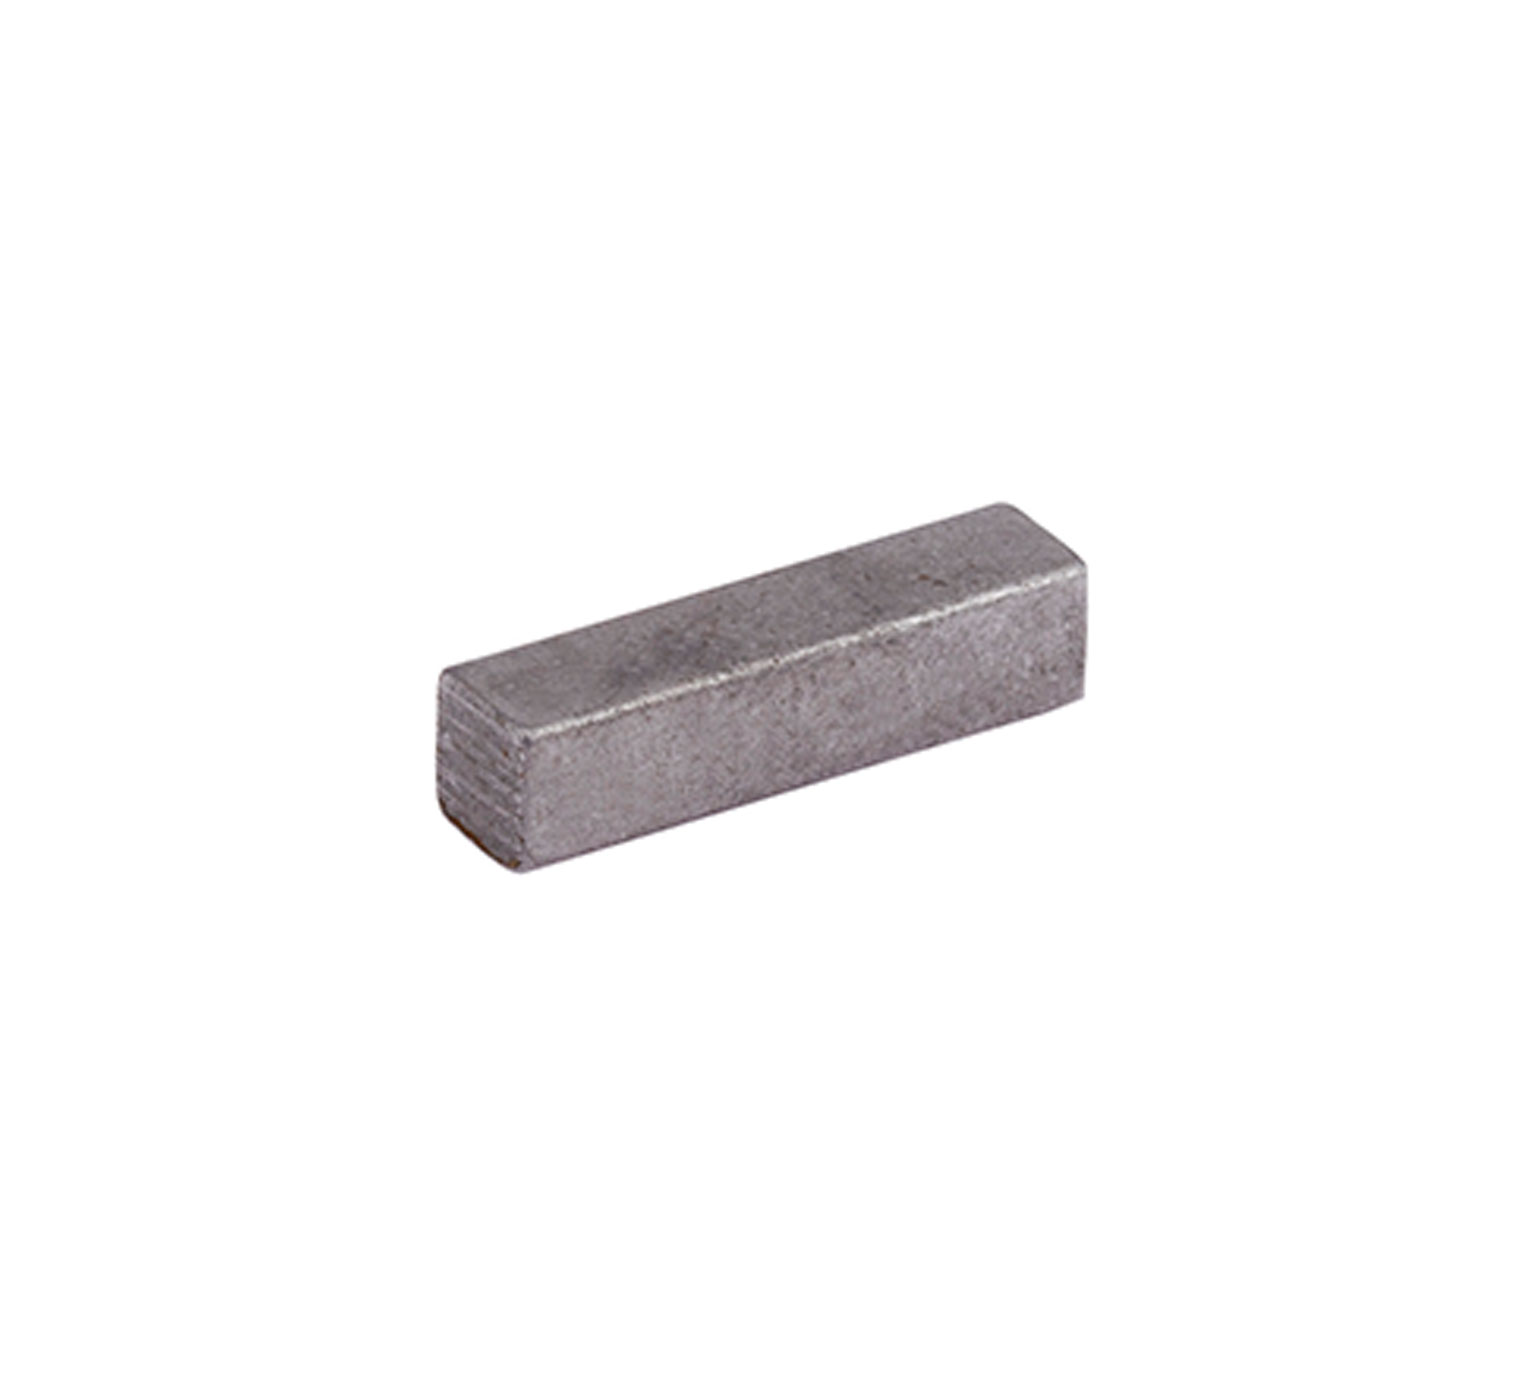 00928 Cold Rolled Steel Key - 2.5 x 2.5 x 1 in alt 1